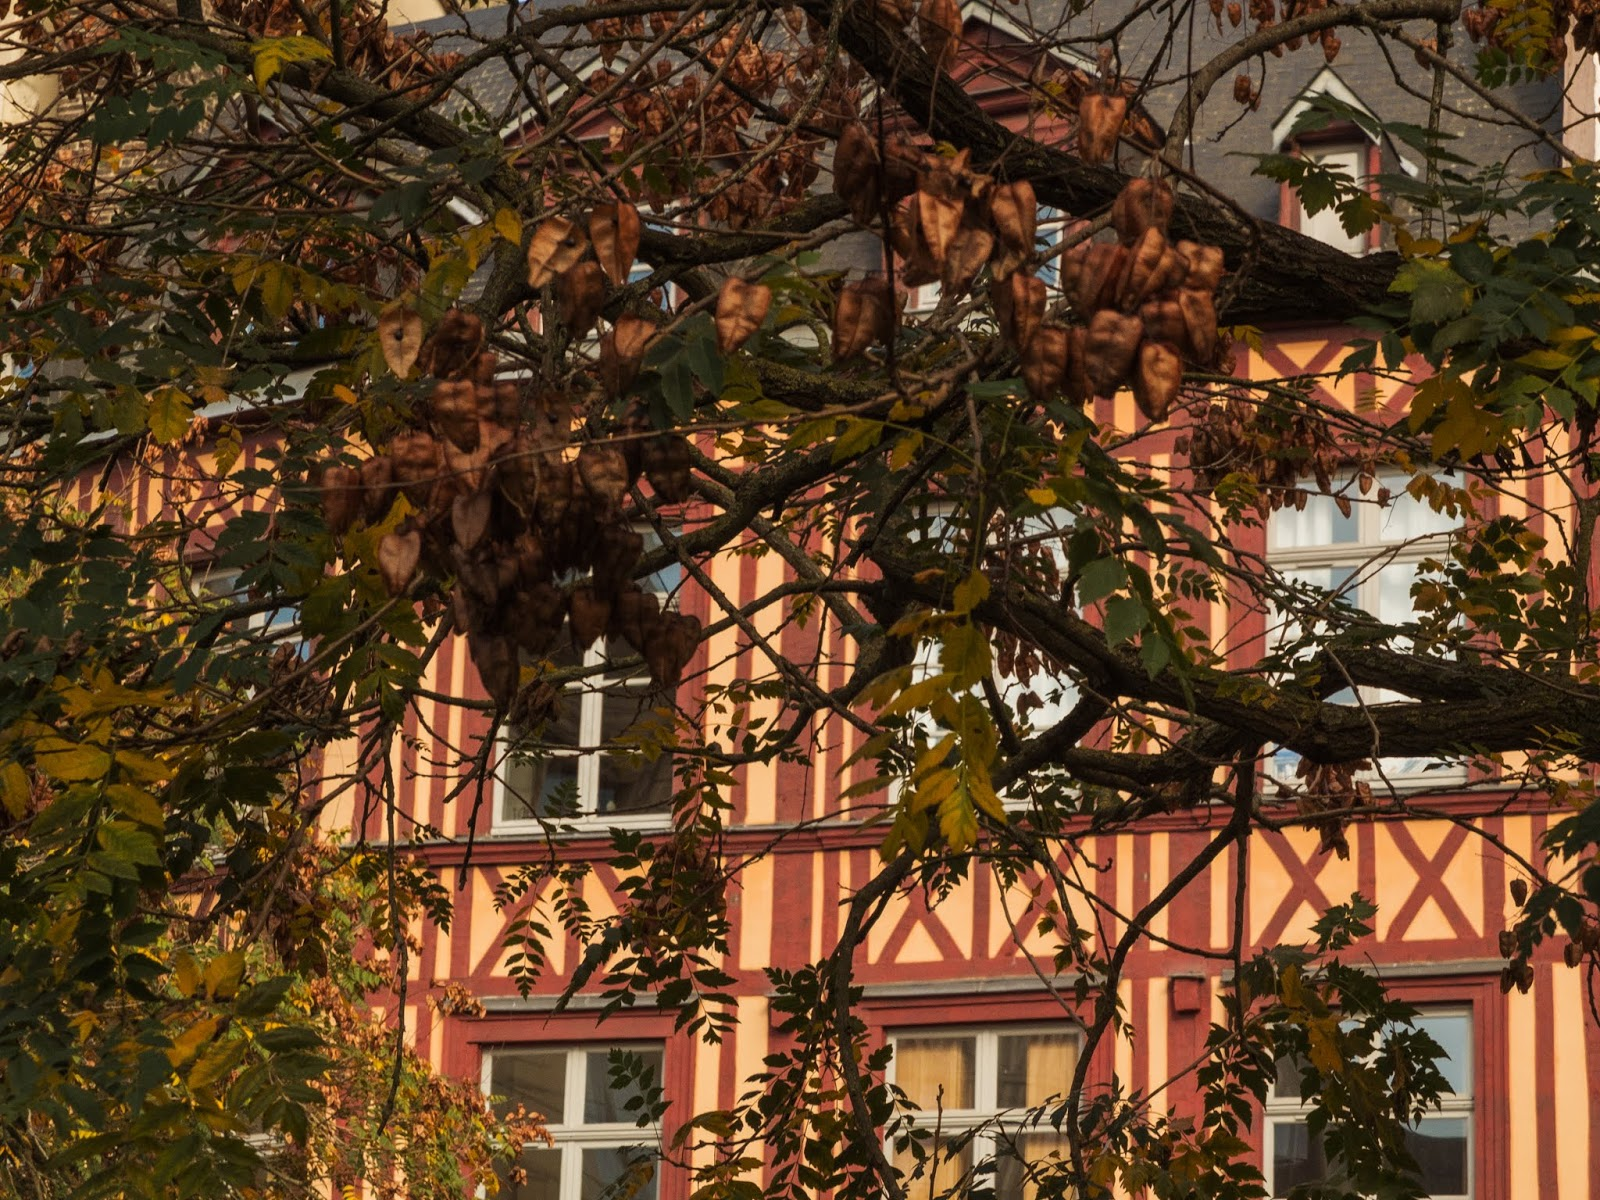 A view of a building through tree branches in Rouen, France.